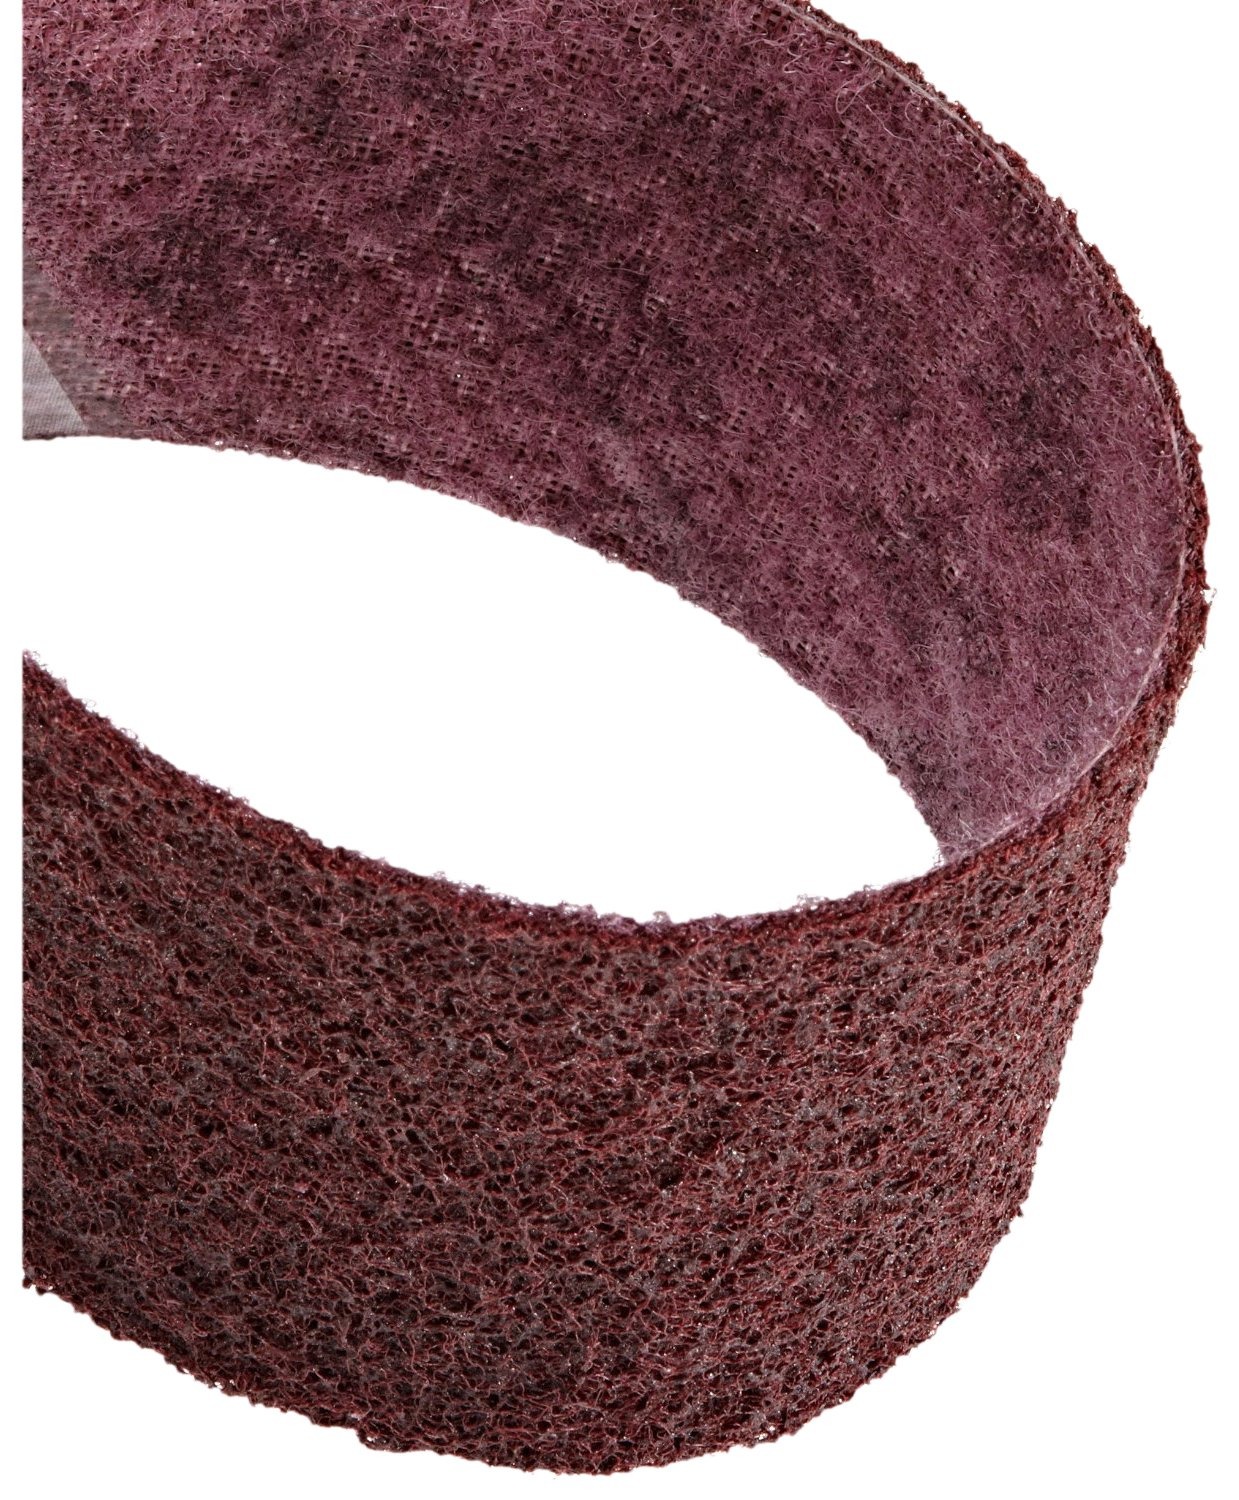 Scotch-Brite Surface Conditioning Belts - 3m s/b 6x48 amed048011-00590